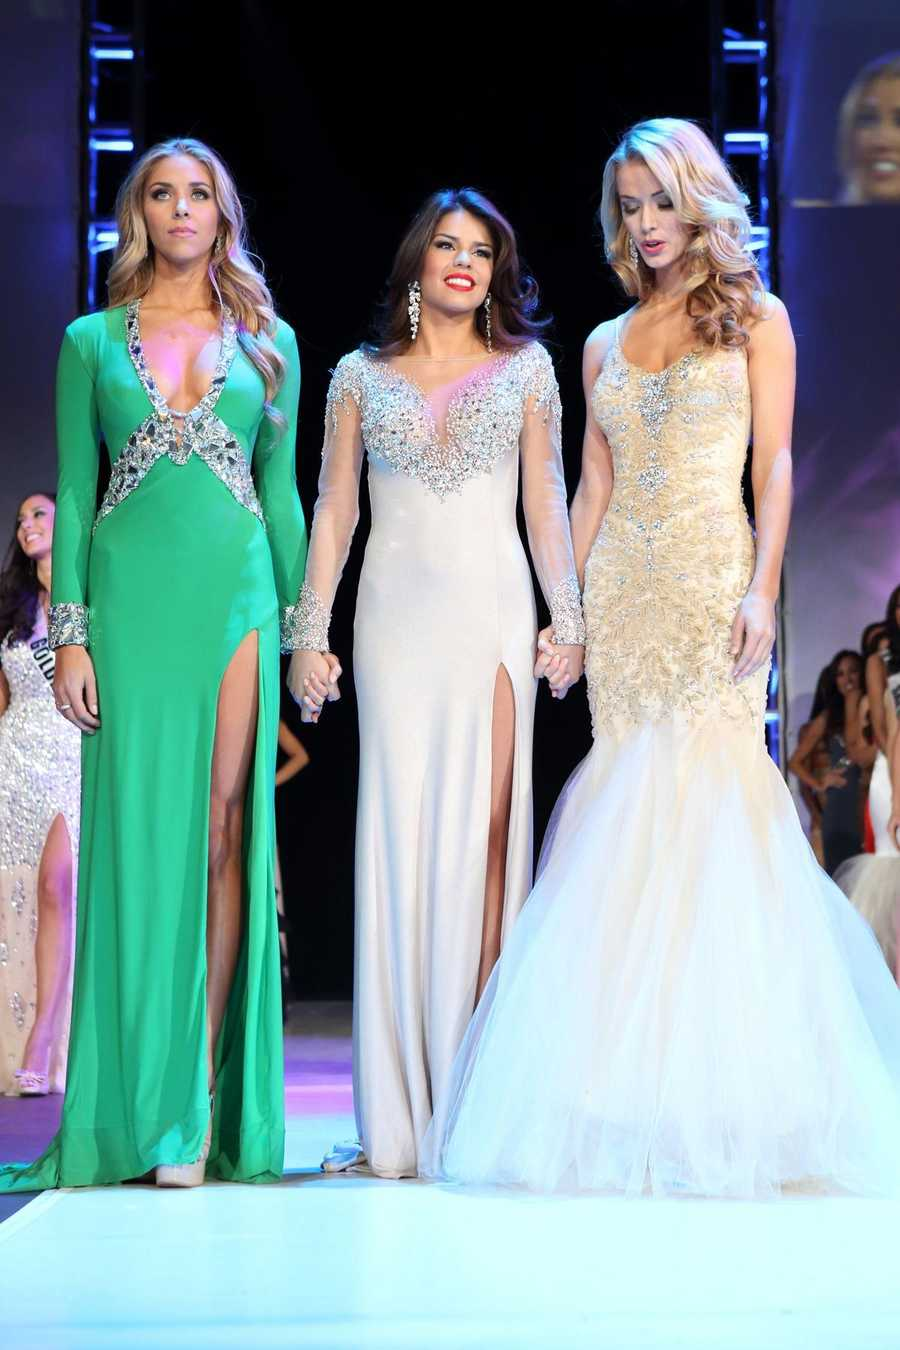 The three remaining competitors wait for the Miss California USA 2013 winner and runner-up to be announced.